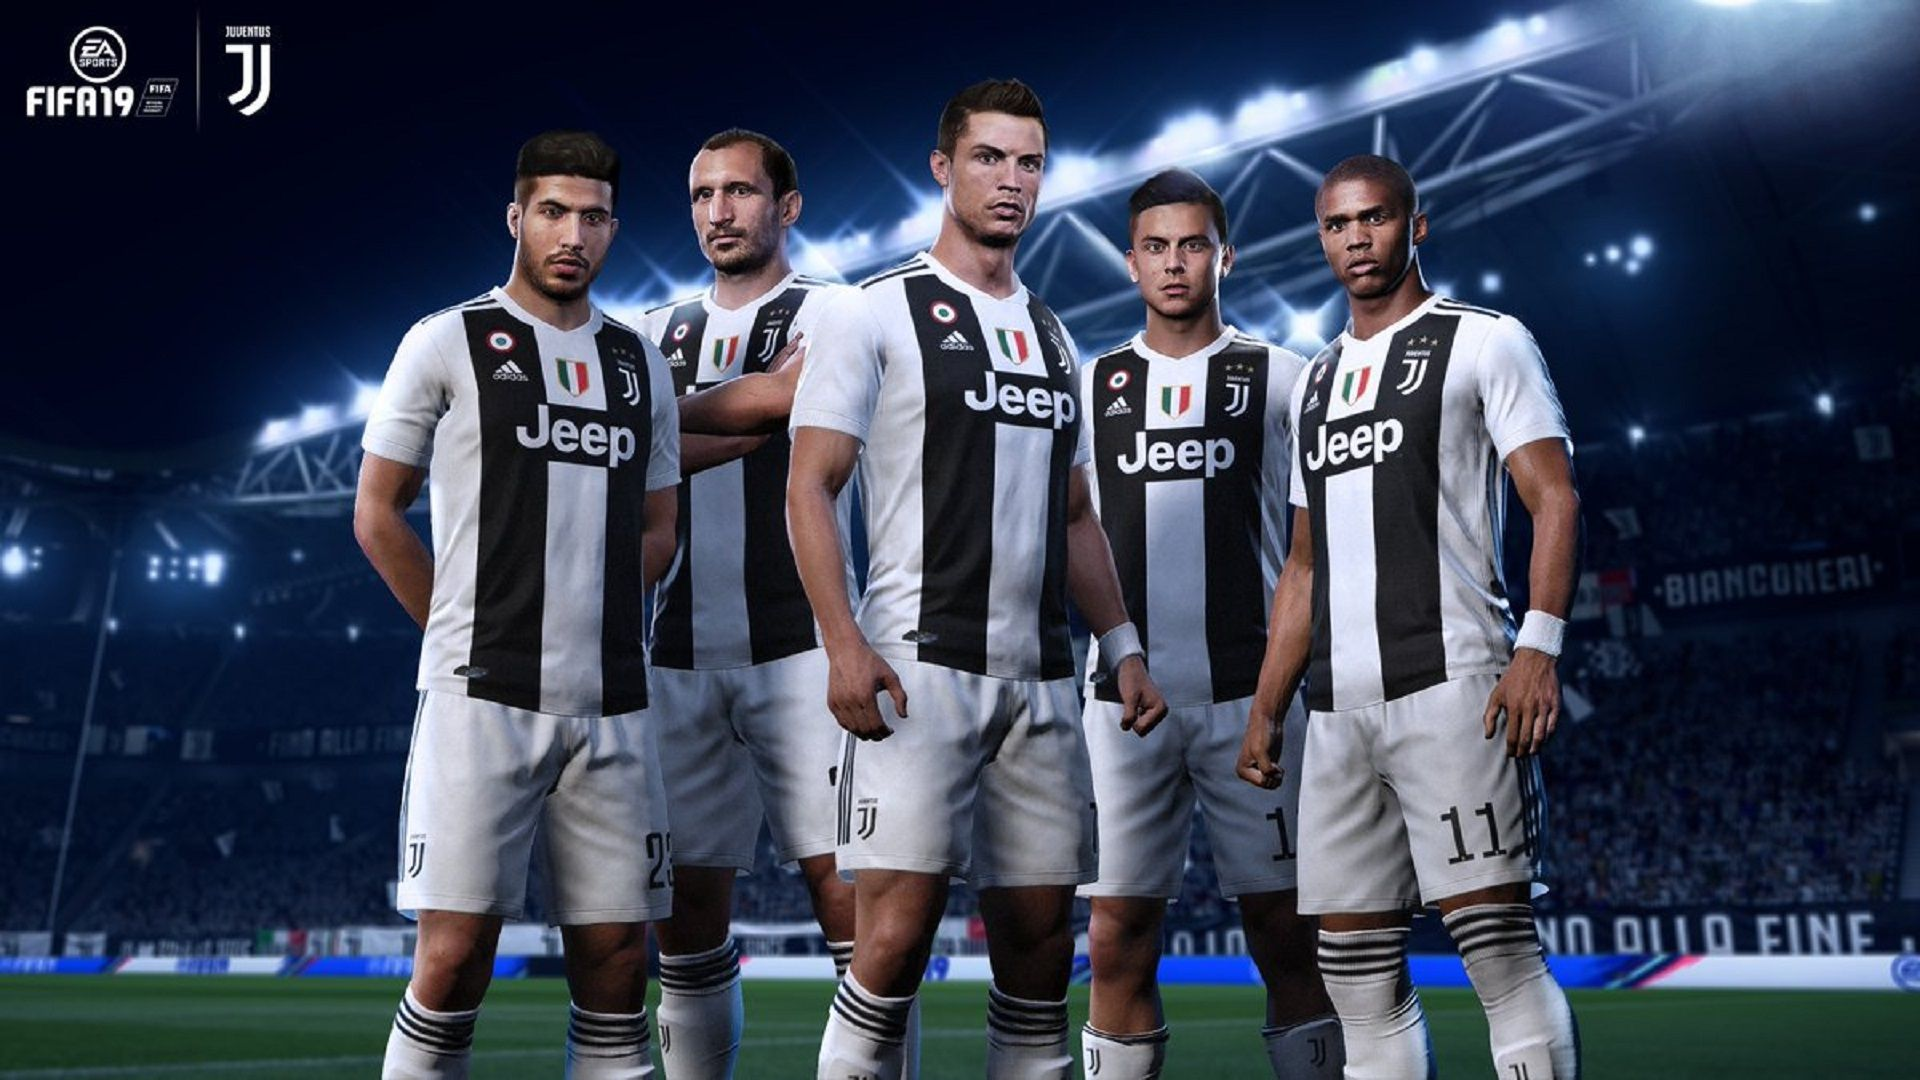 Soccer Fifa 19 New Champions League Features In Ultimate Team The Journey More How Exactly Will Ea Sports Be Integrating The Soccer Fifa Fifa Ronaldo